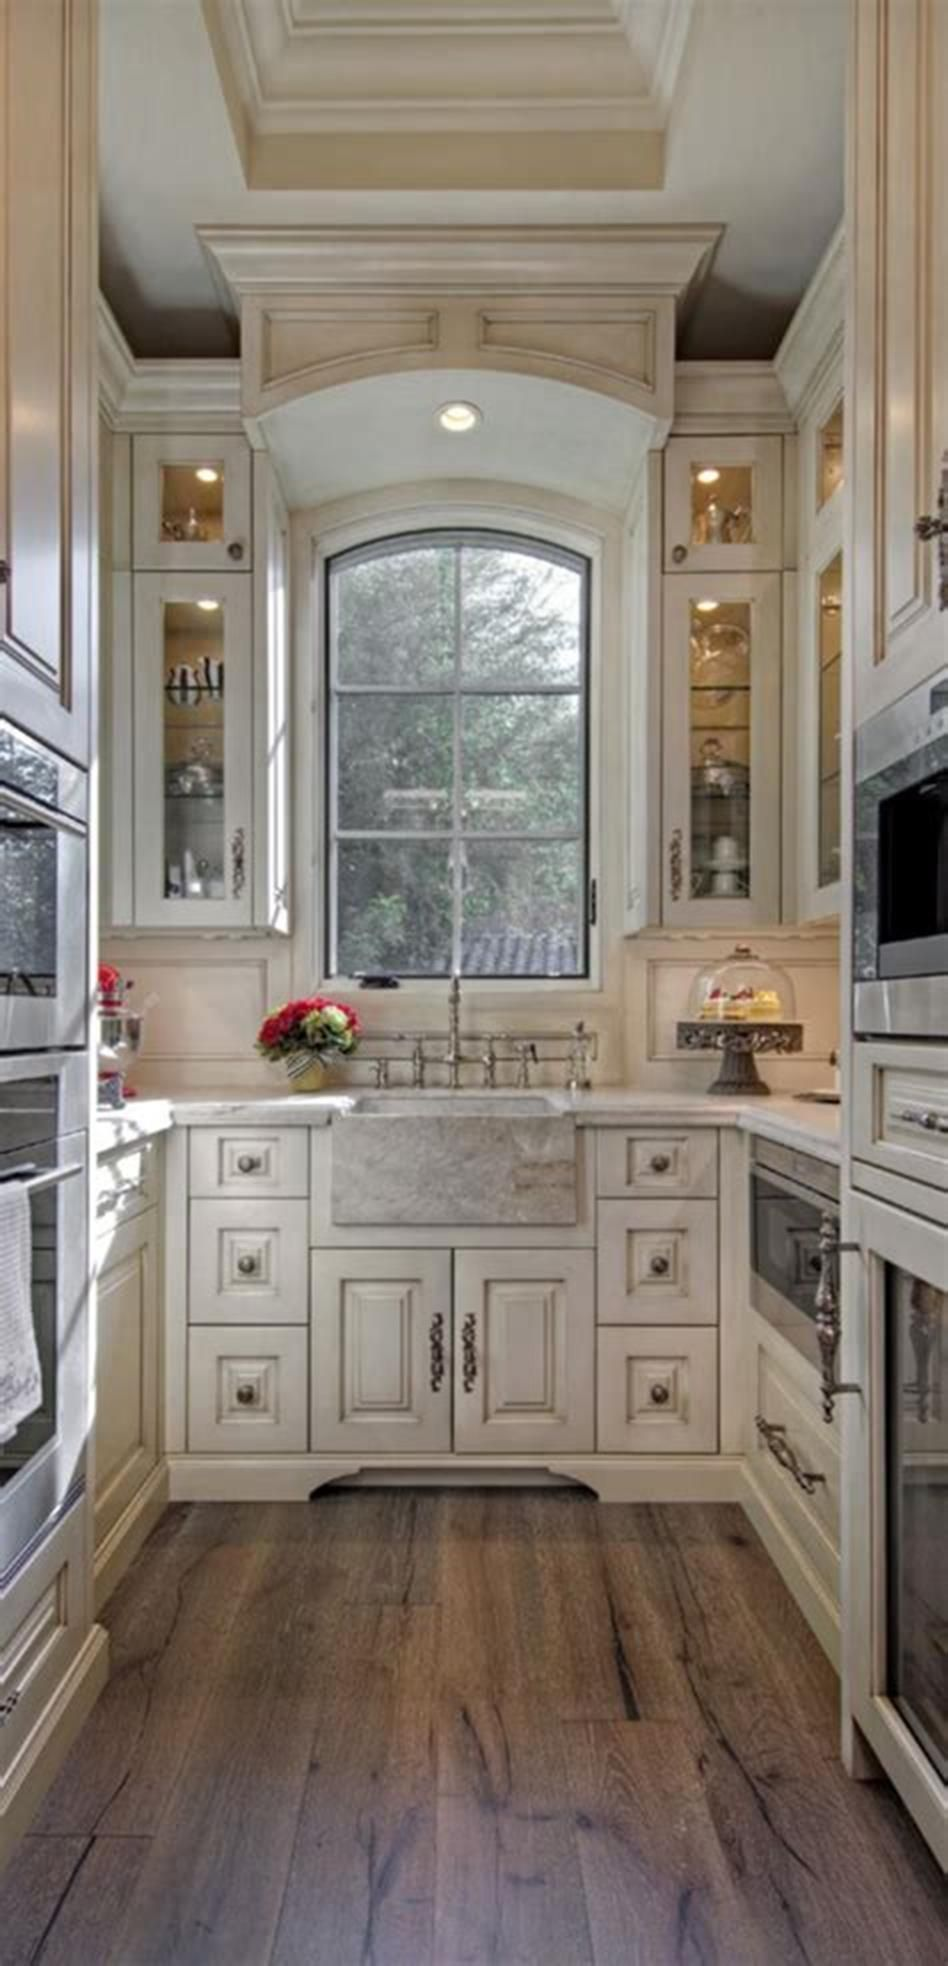 10x10 Kitchen Remodel: 43 Amazing Kitchen Remodeling Ideas For Small Kitchens